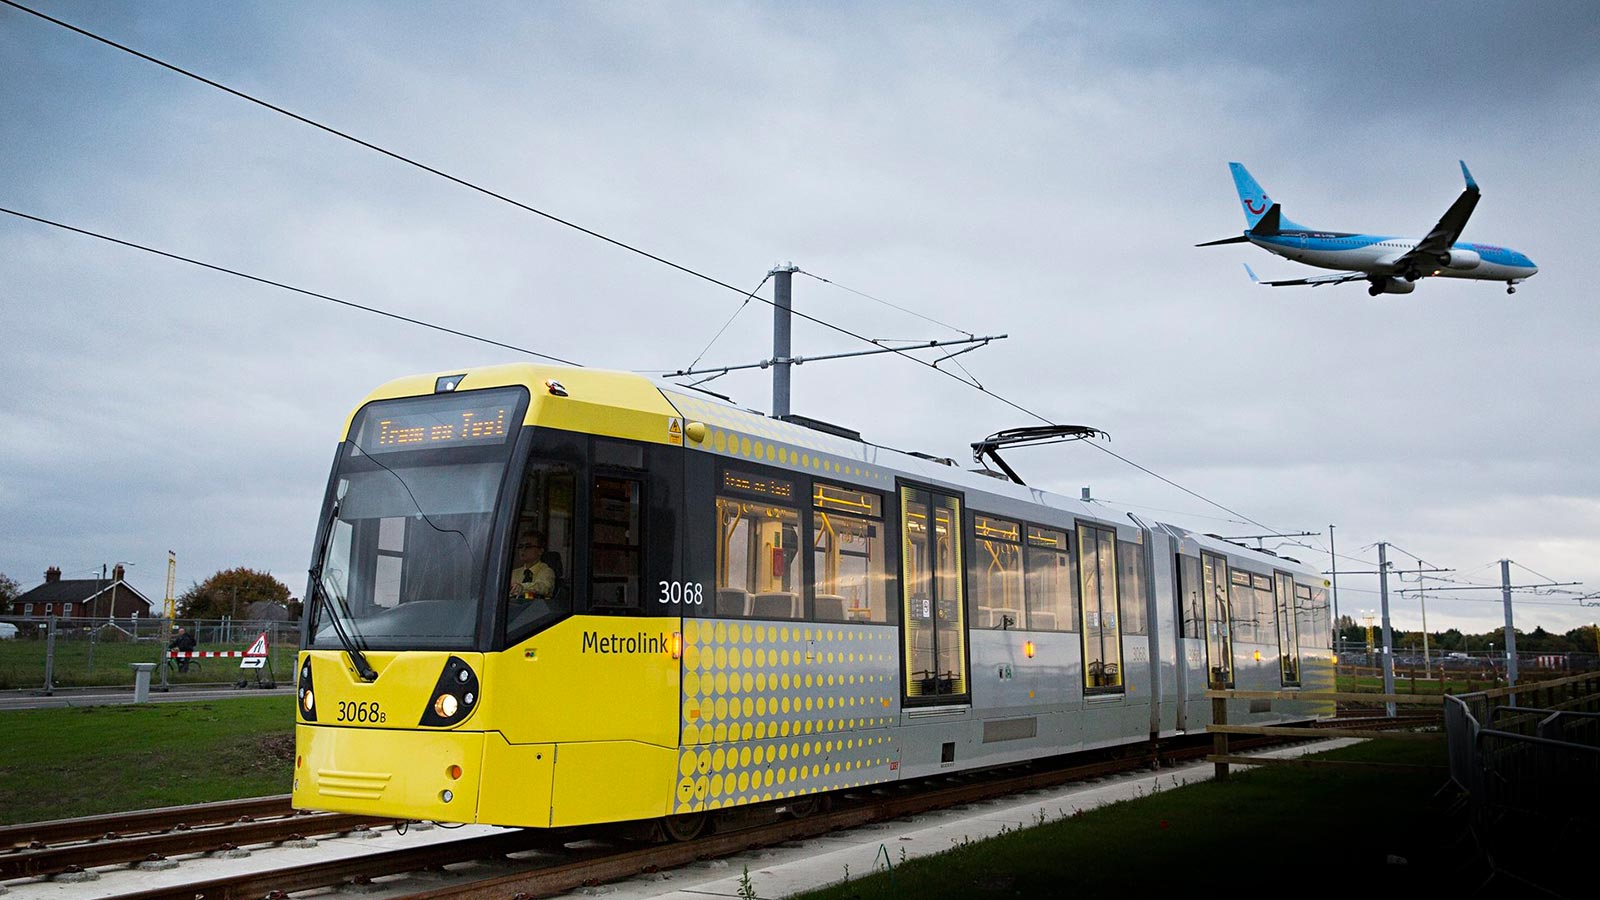 Blue Tui Plane Flying Over a Yellow Tram - Mace Group